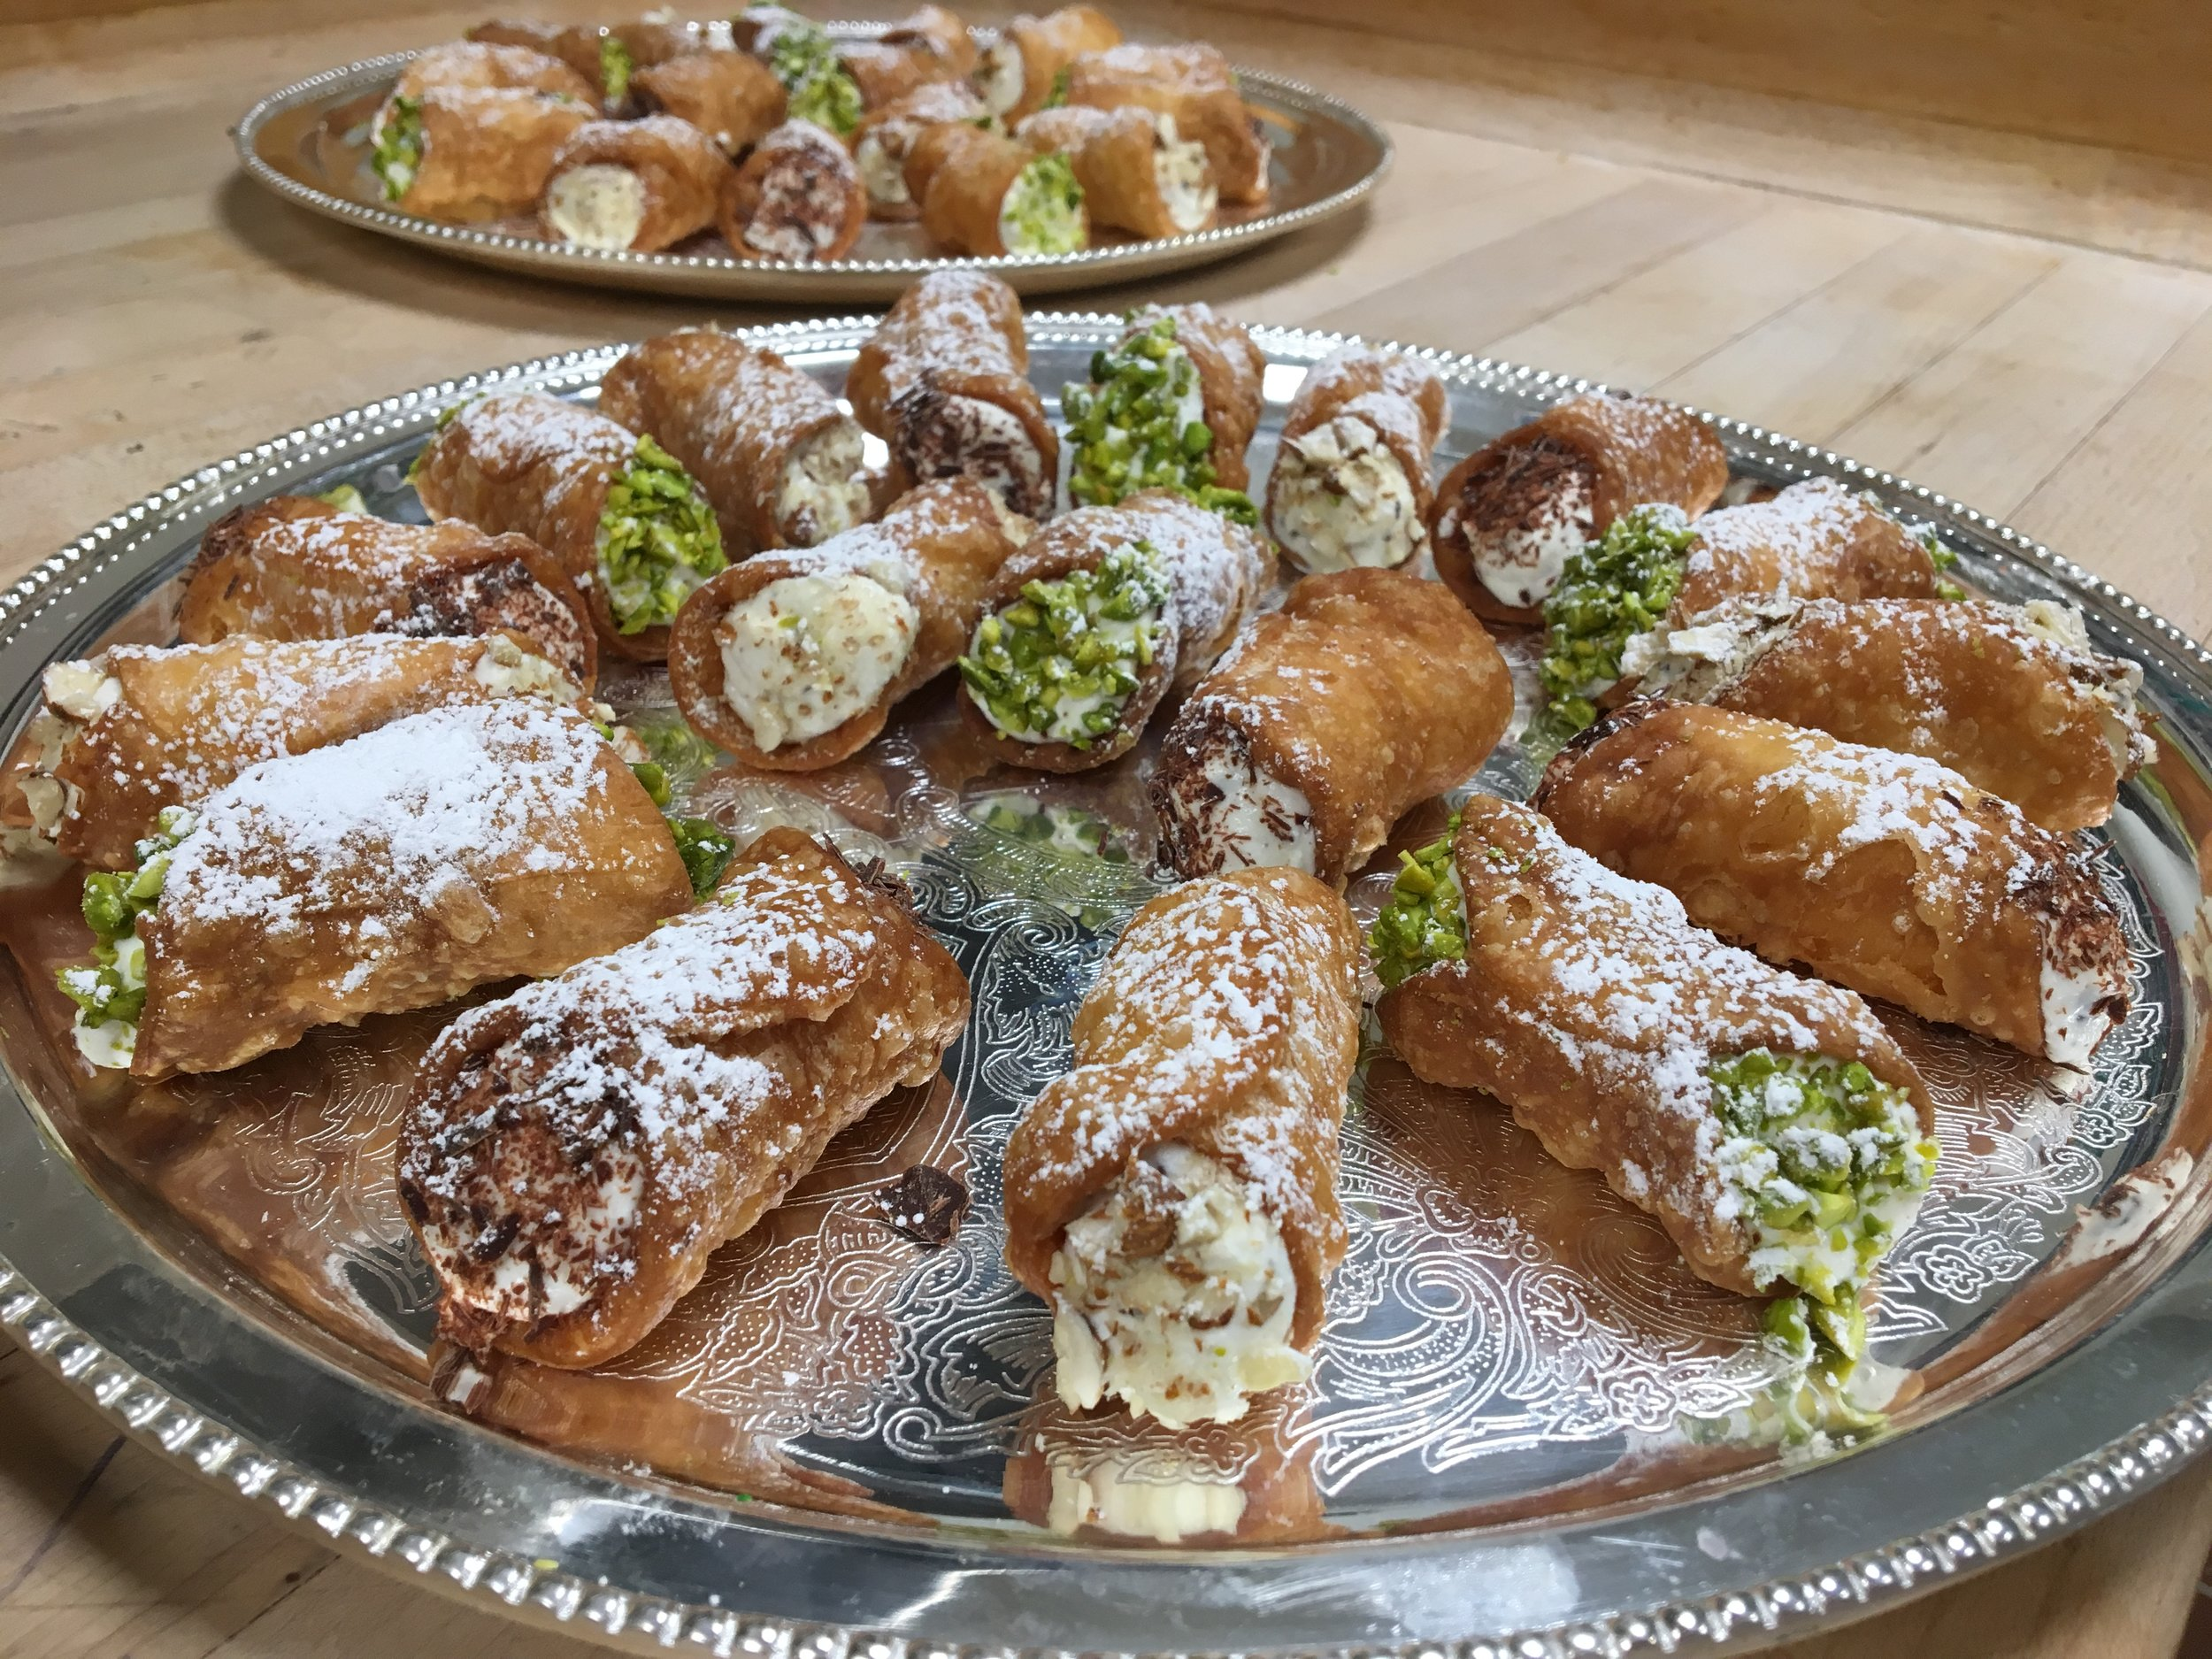 Celebrating Sicilia - our take on the supremely influenced and always unique food of Sicily